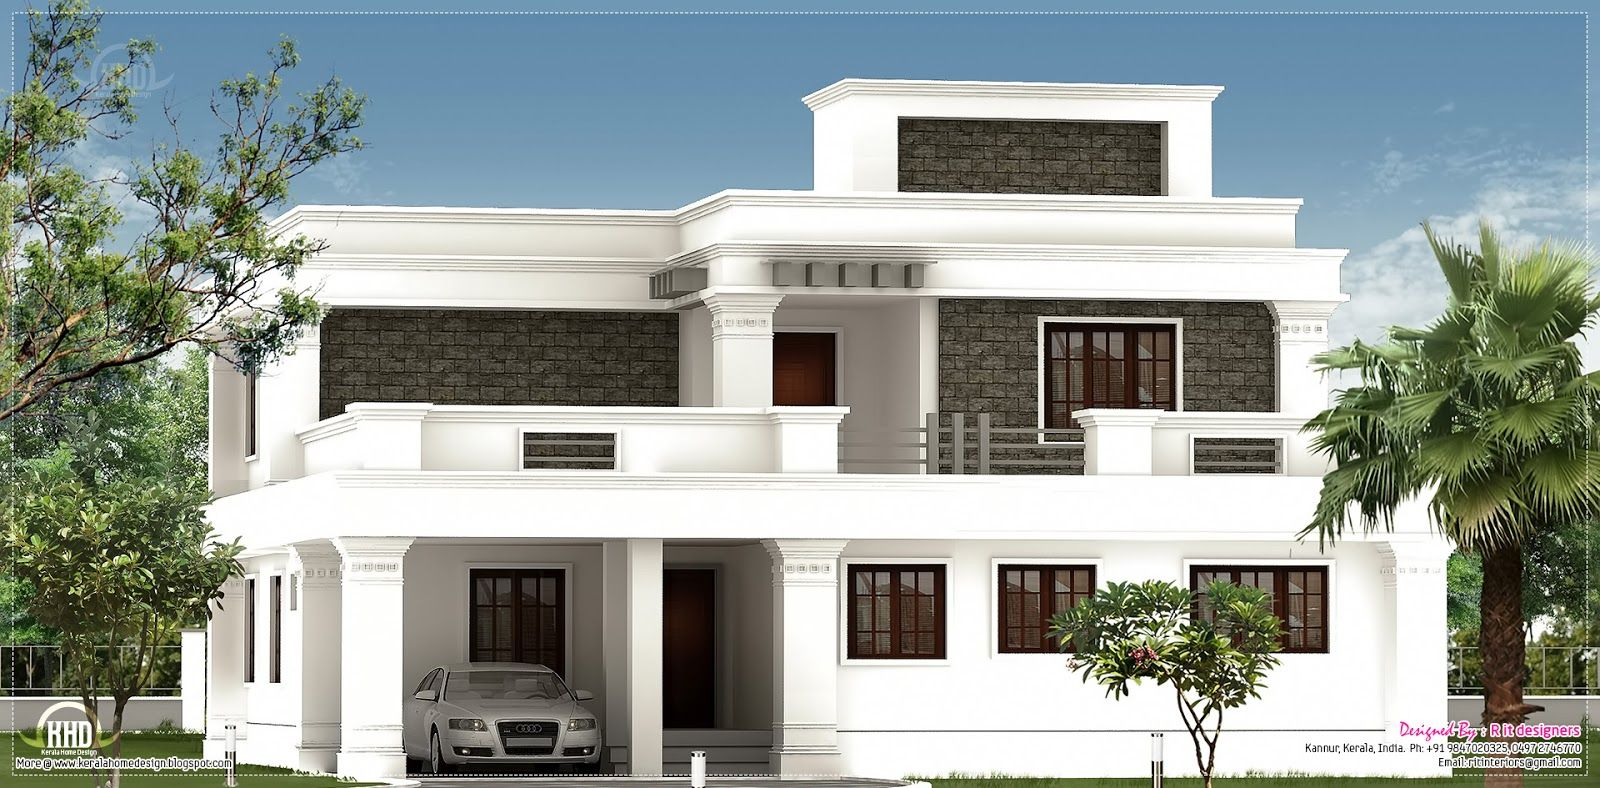 Flat roof homes designs flat roof villa exterior in 2400 for Villas designs photos